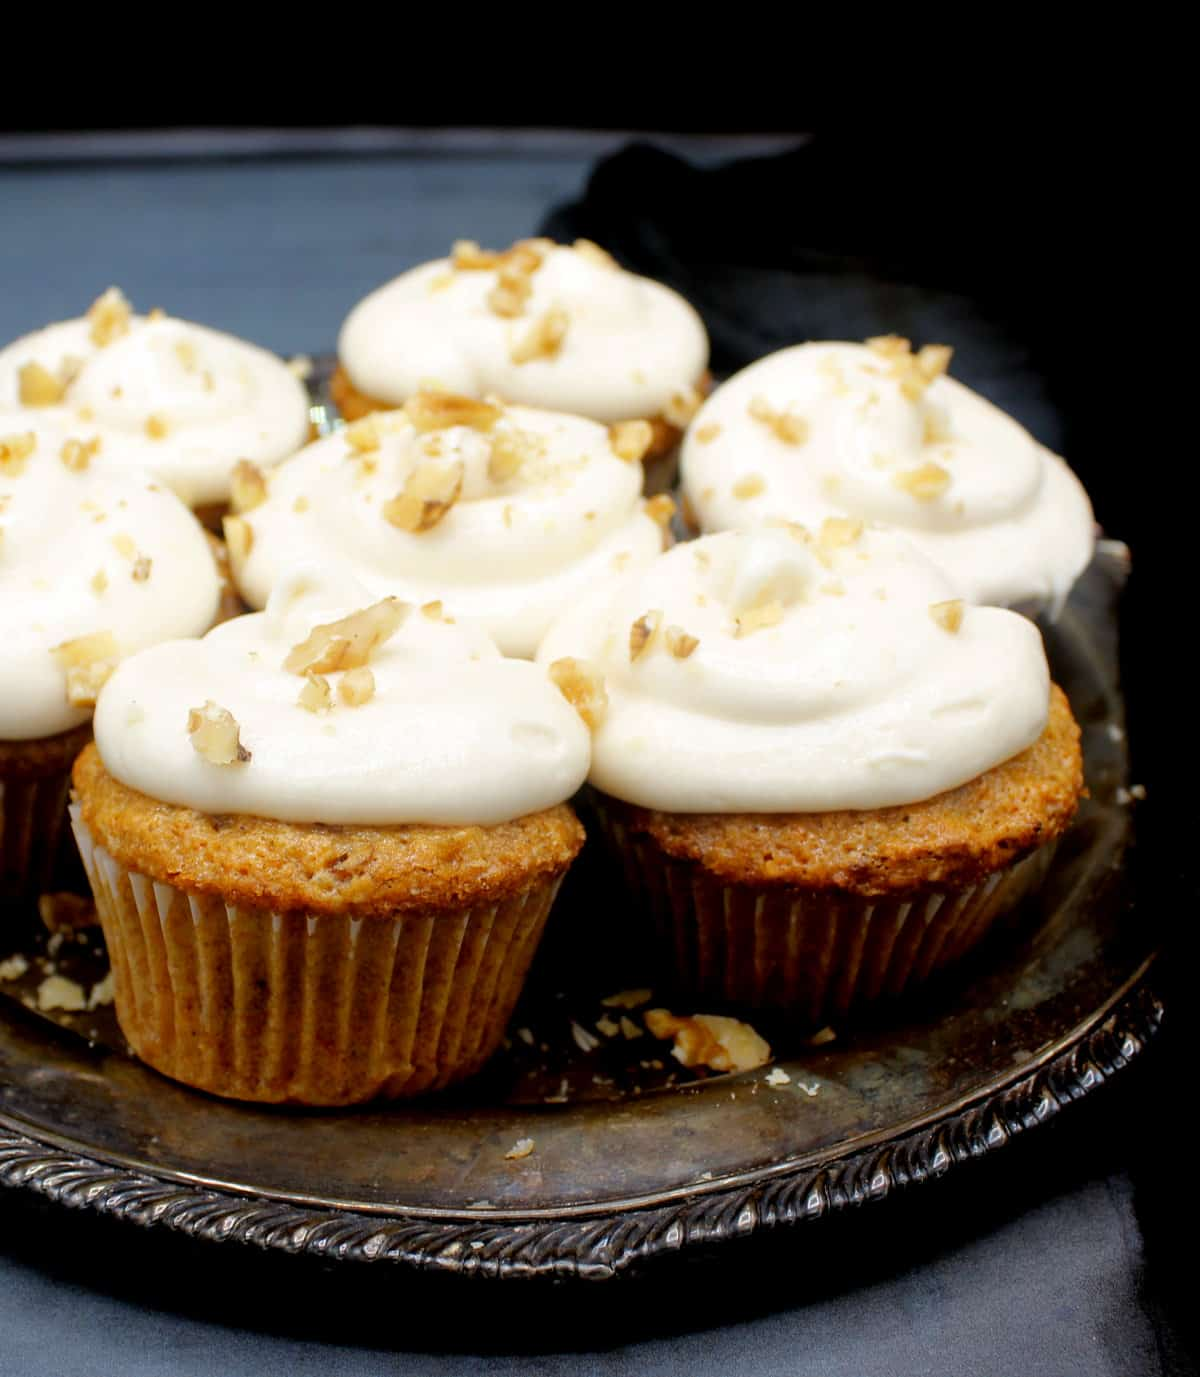 Close front shot of vegan carrot cupcakes with cream cheese frosting and walnuts scattered on top in a silver plate.